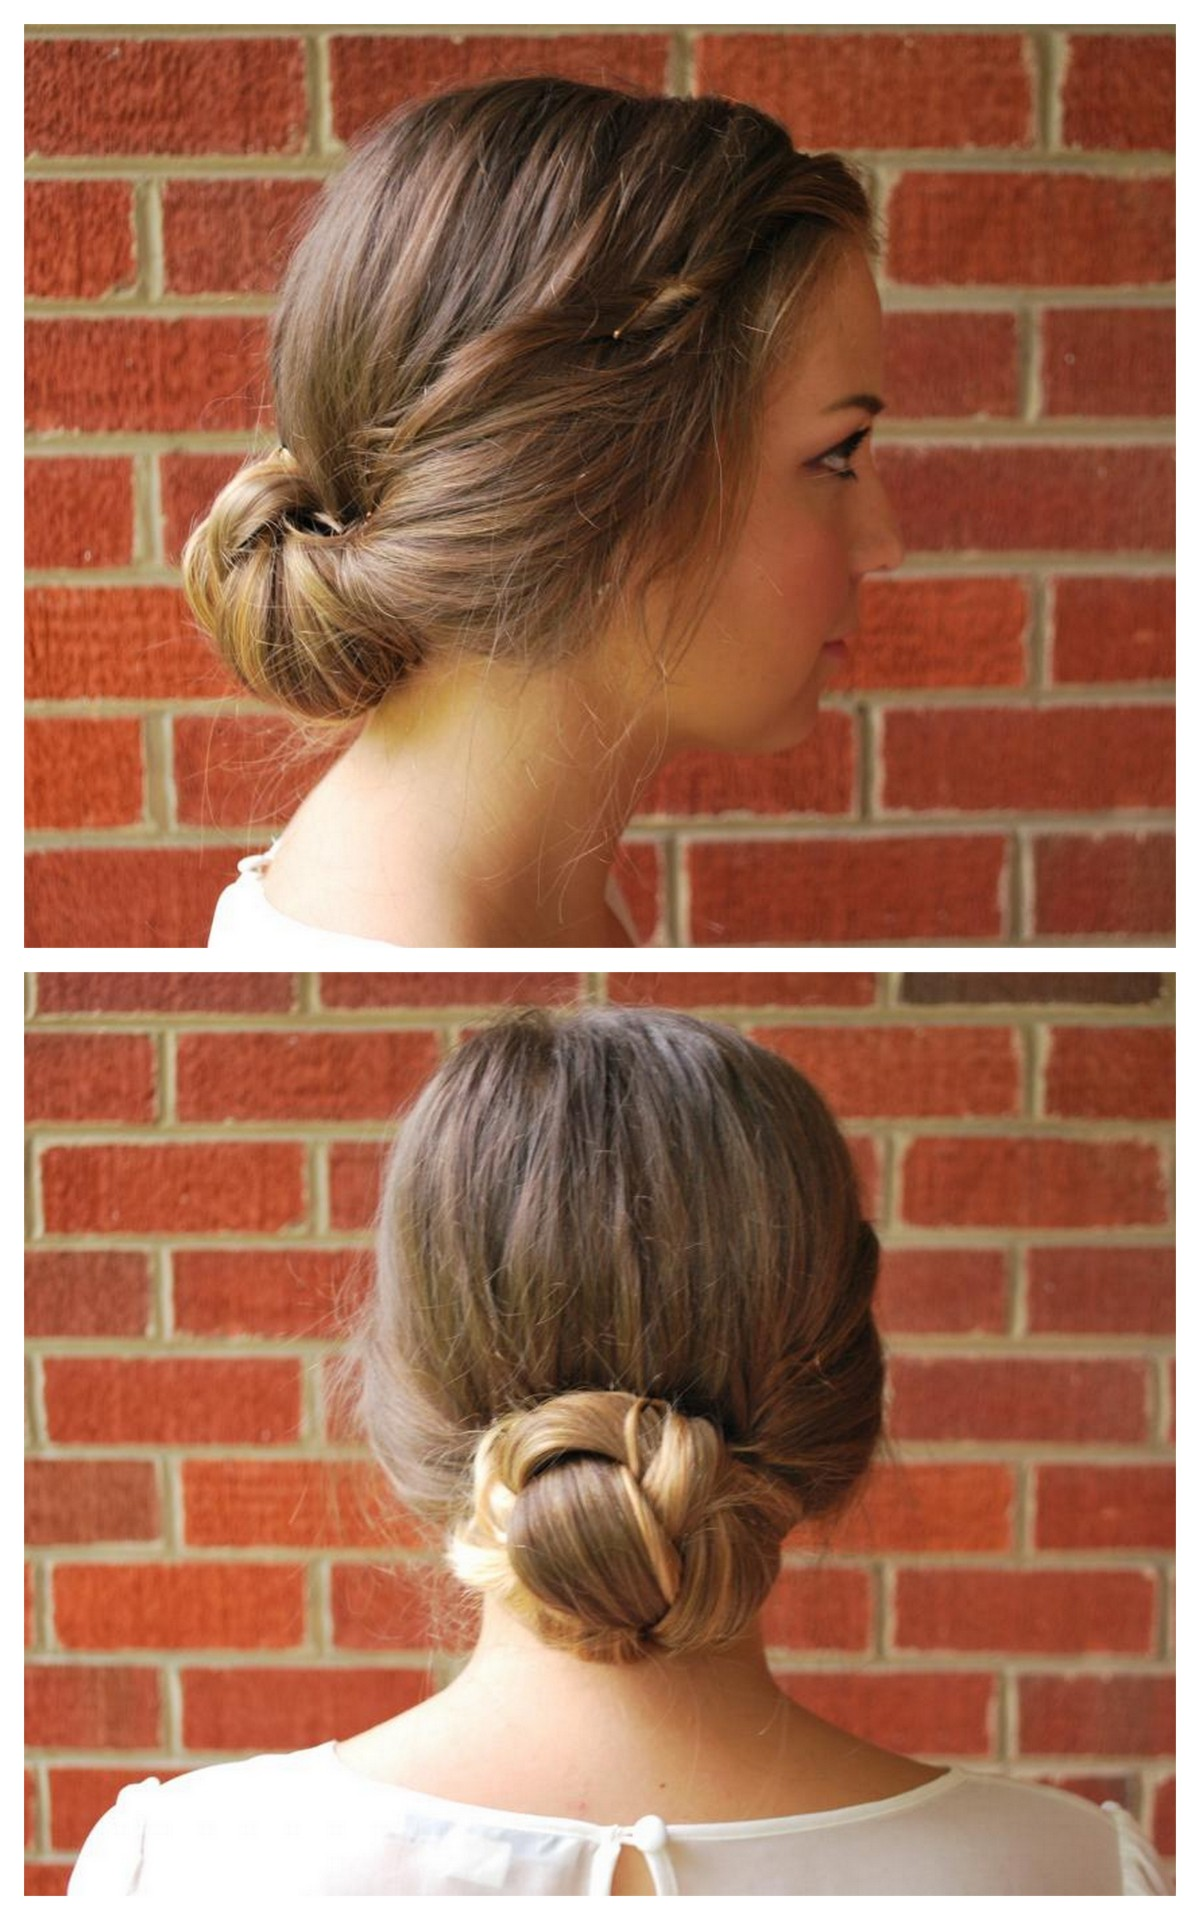 5 Minute Hairstyle Tutorials